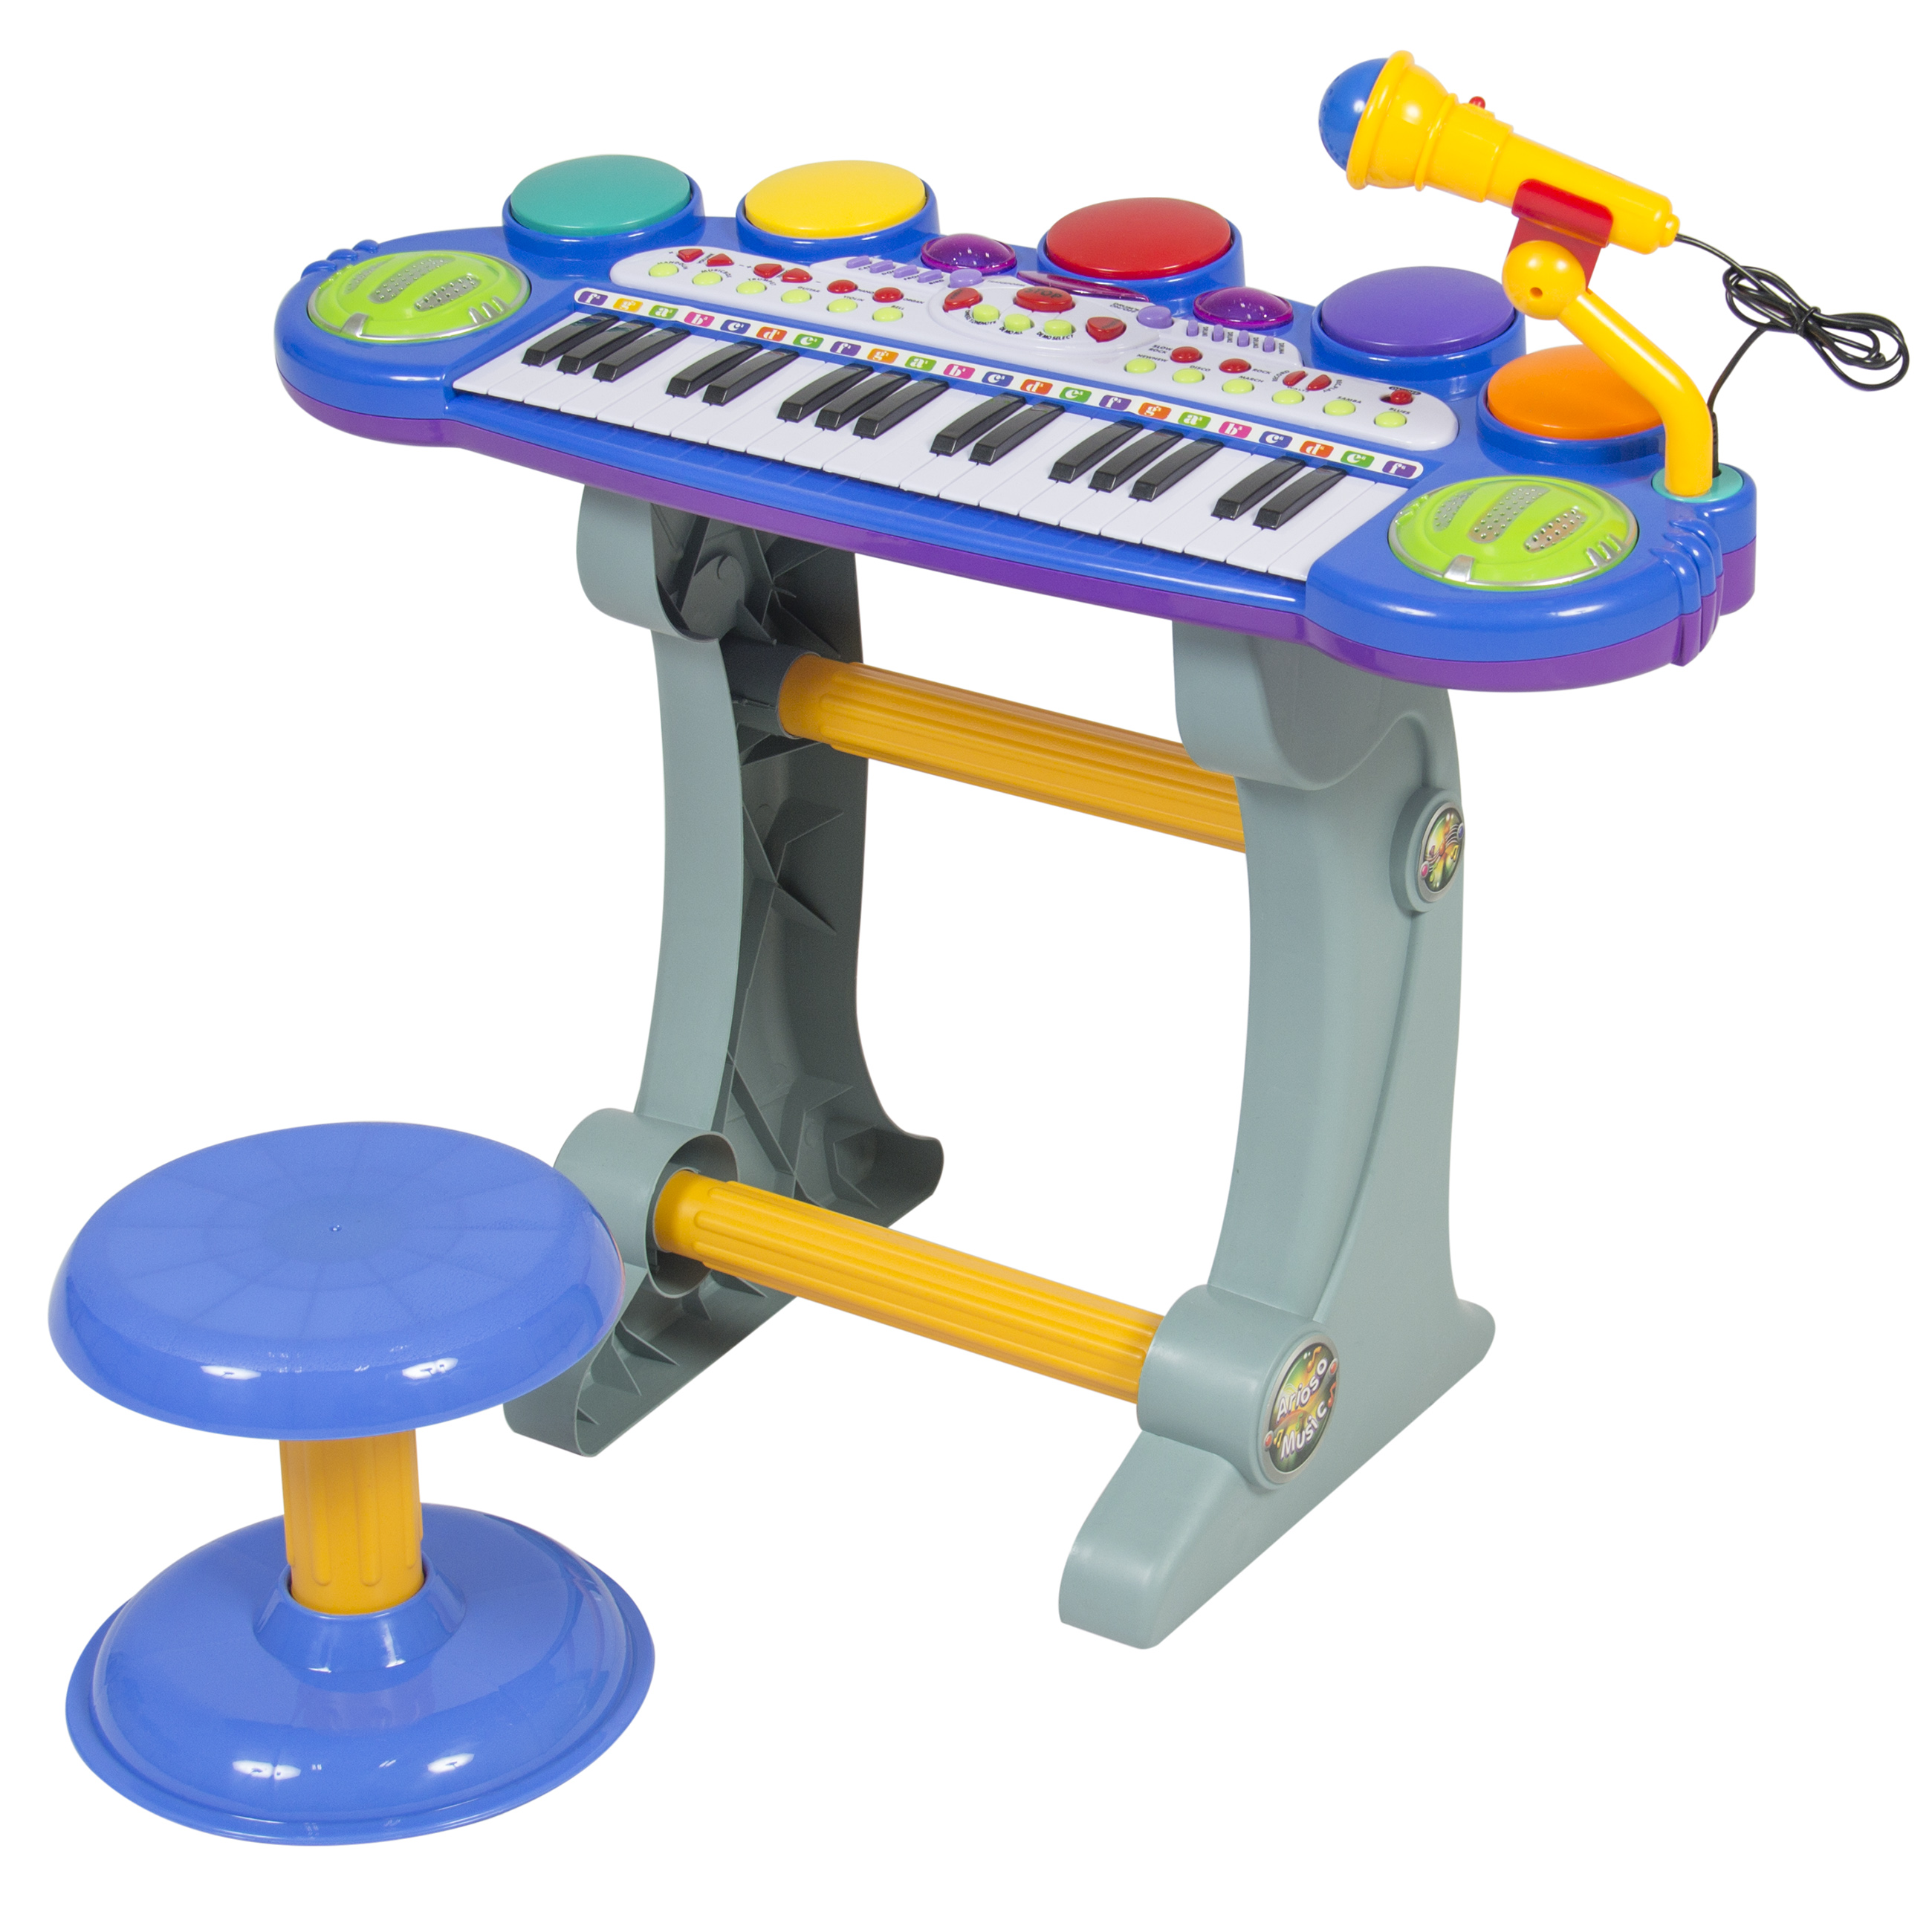 Best Choice Products 37-Key Kids Electronic Piano Keyboard w/ Record and Playback, Microphone, Synthesizer, Stool - Pink